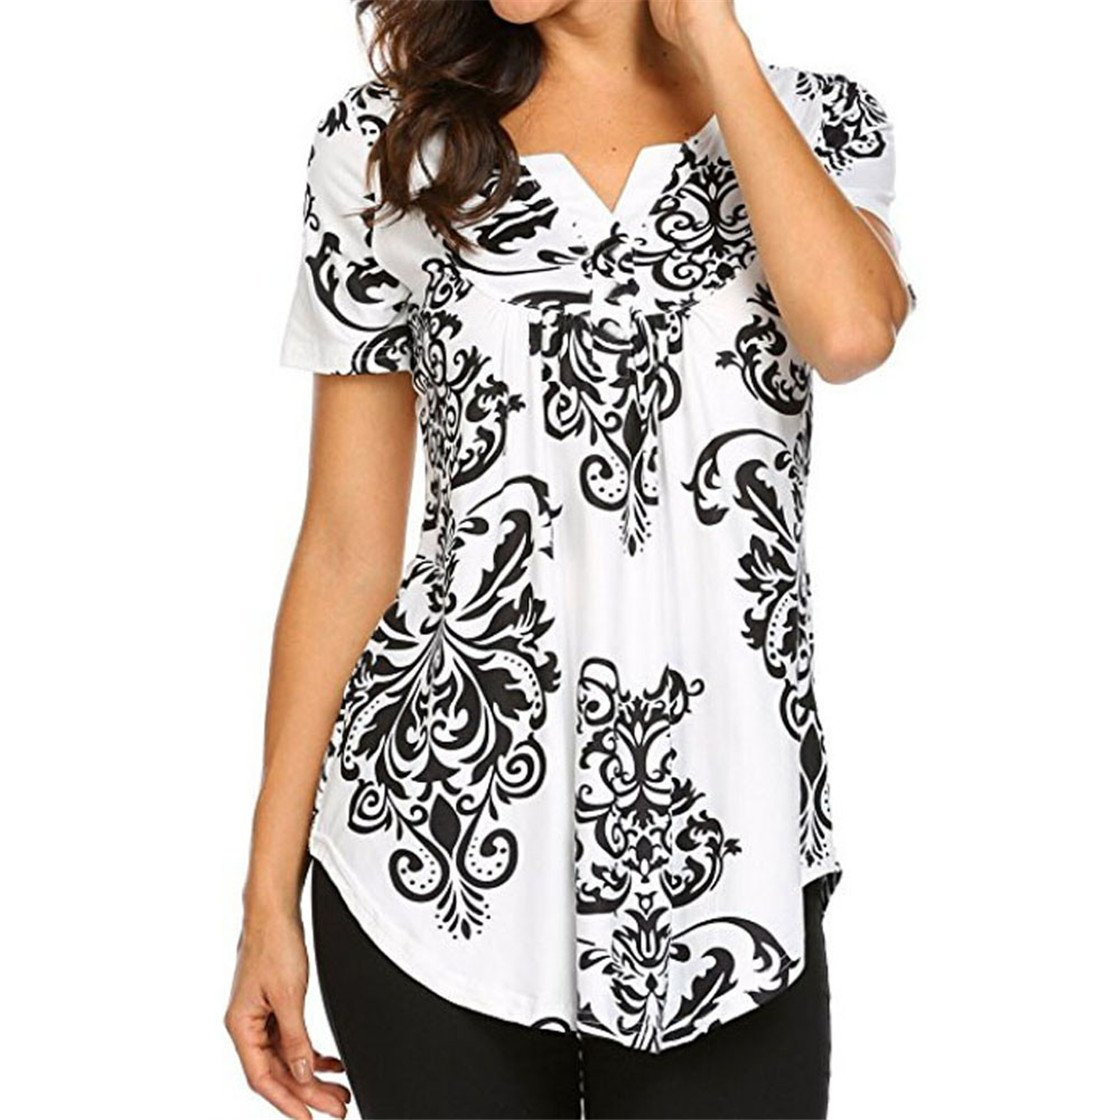 Mose Floral Blouses for Women, Womens Holiday V-Neck Print Tops Short Sleeve Pleated Casual Flare Tunic Blouse Fashion Shirt New (S, Black)